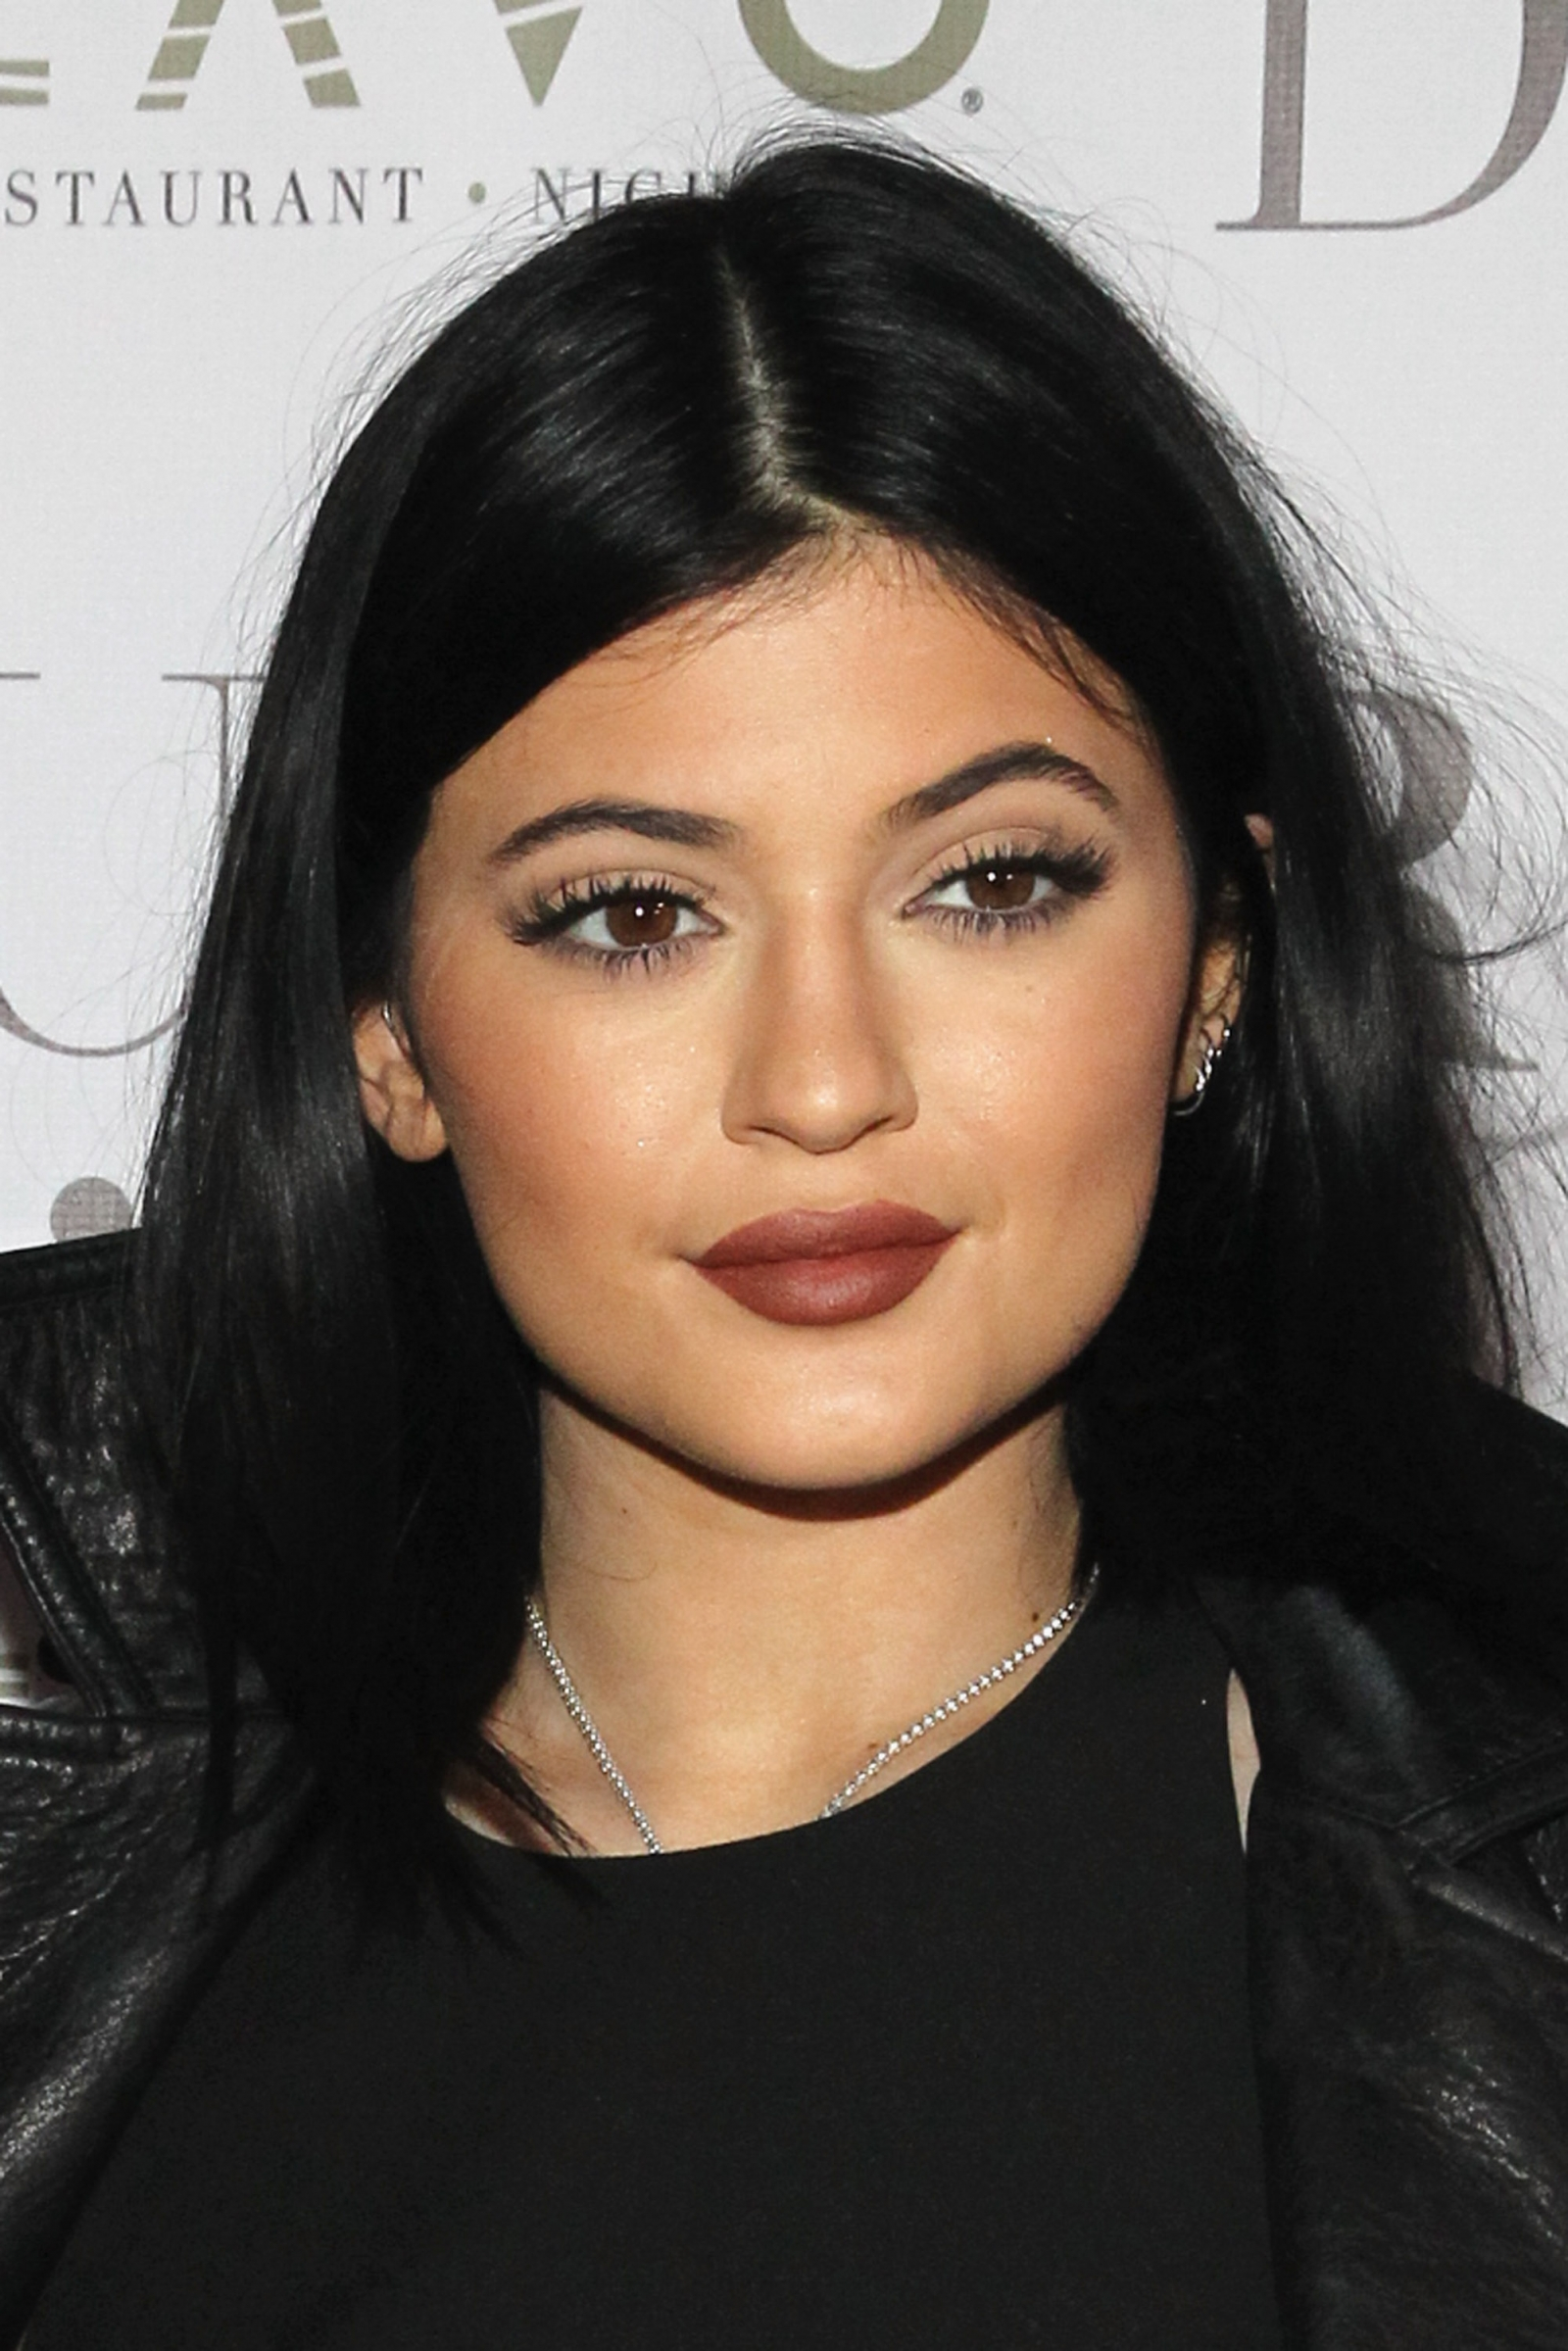 Doing A Kim Kardashian? Kylie Jenner Has 'Found Her Own